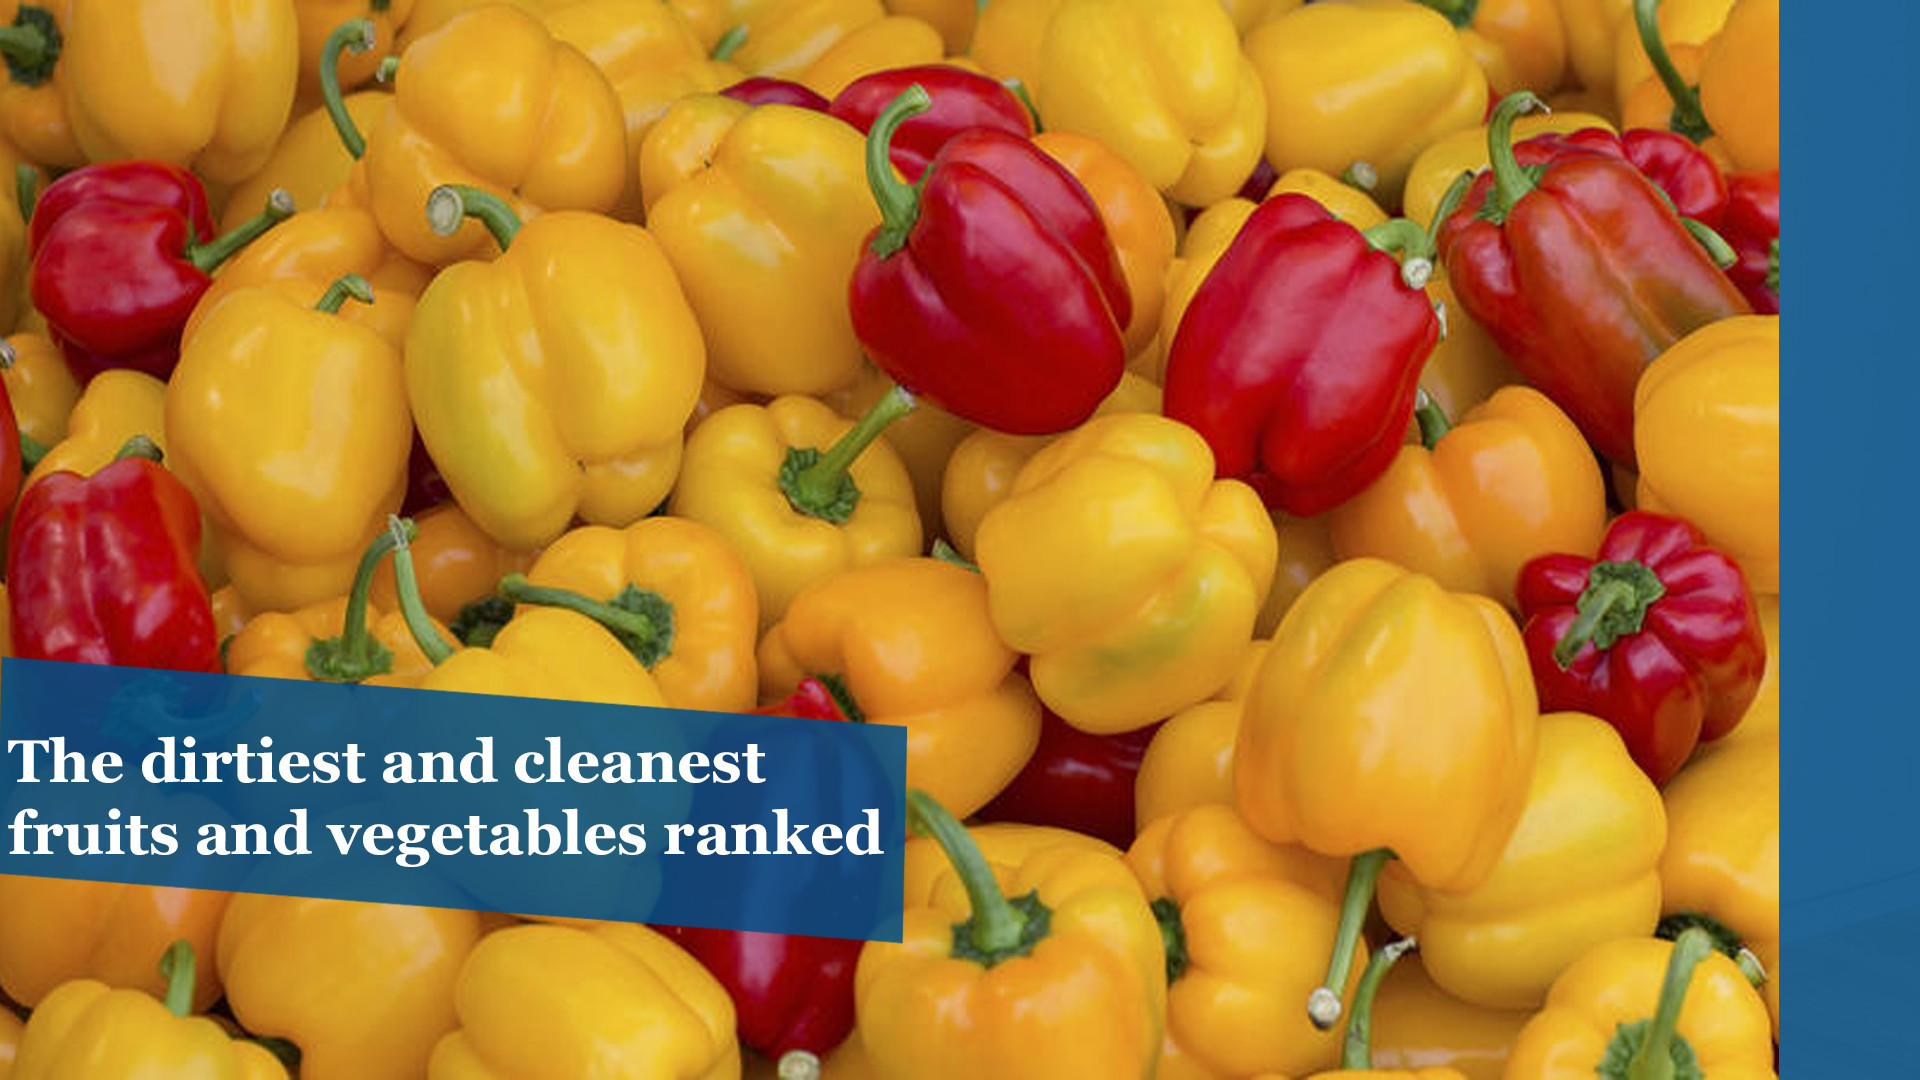 Pesticide guide: The dirtiest and cleanest fruits and vegetables ranked